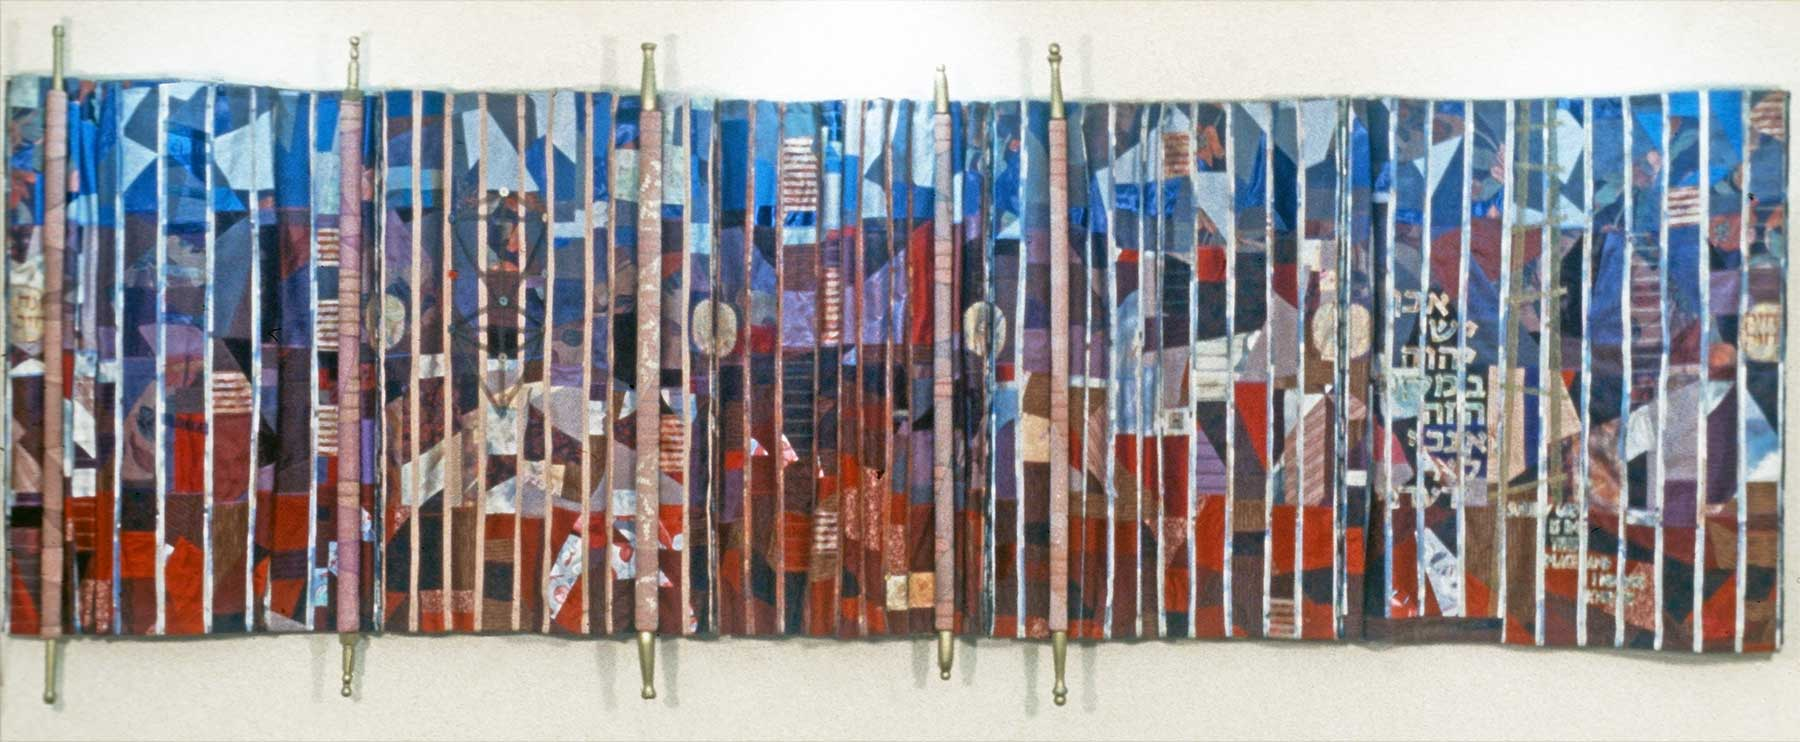 From earth to heaven tapestry temmagentles from earth to heaven tapestry temmagentles biocorpaavc